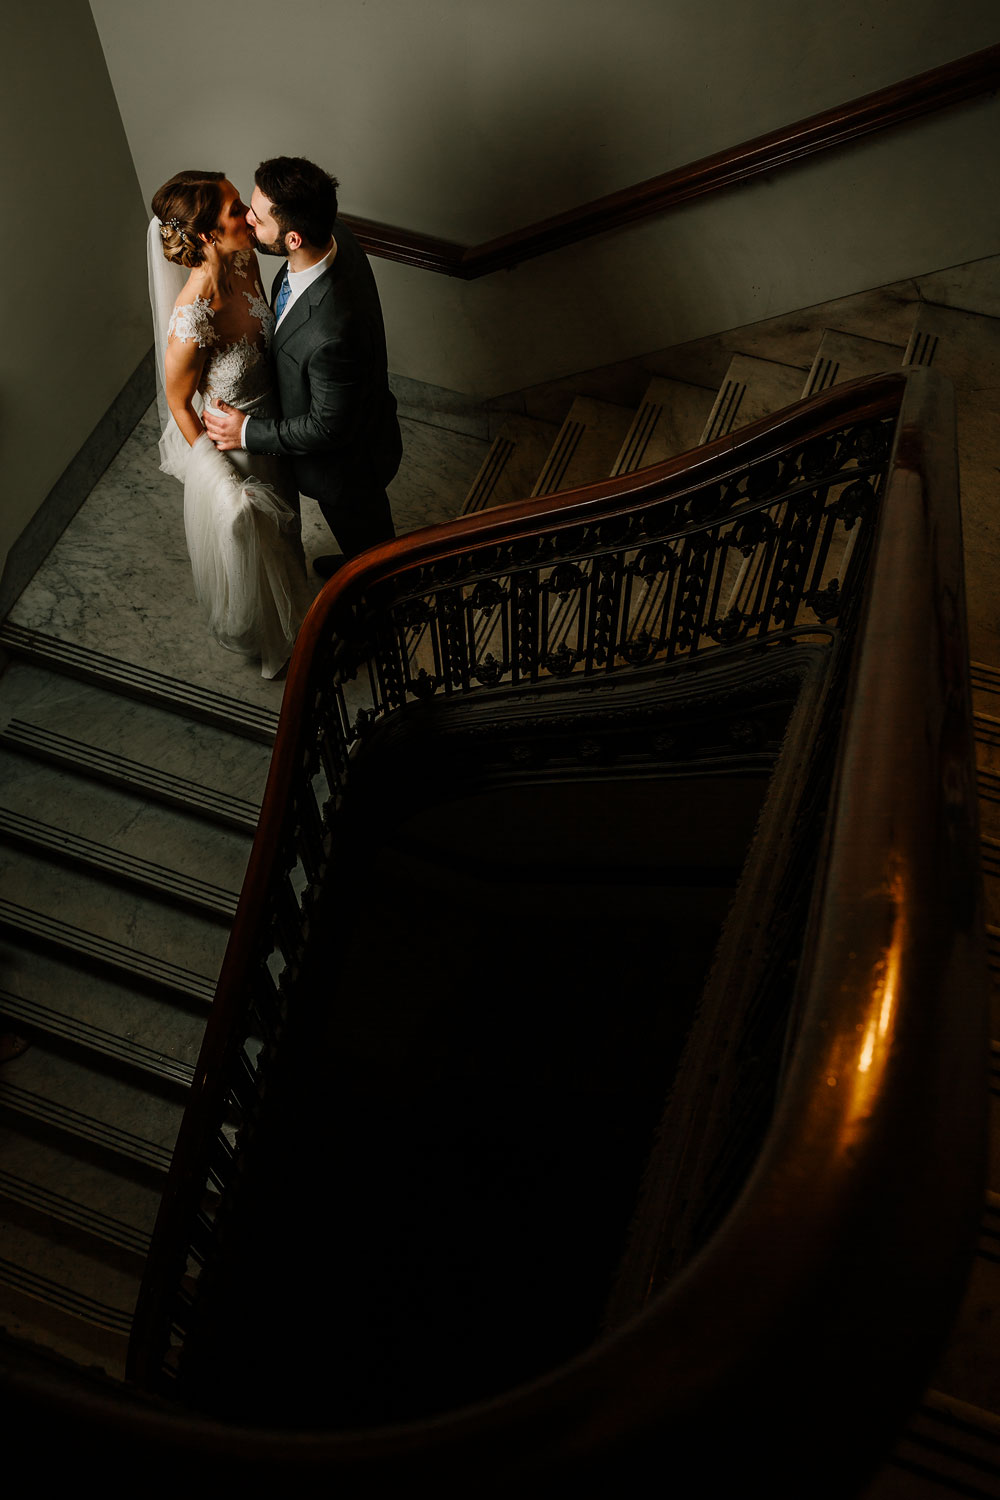 cleveland-wedding-photographers-downtown-playhouse-square-crowne-plaza-hotel-99.jpg